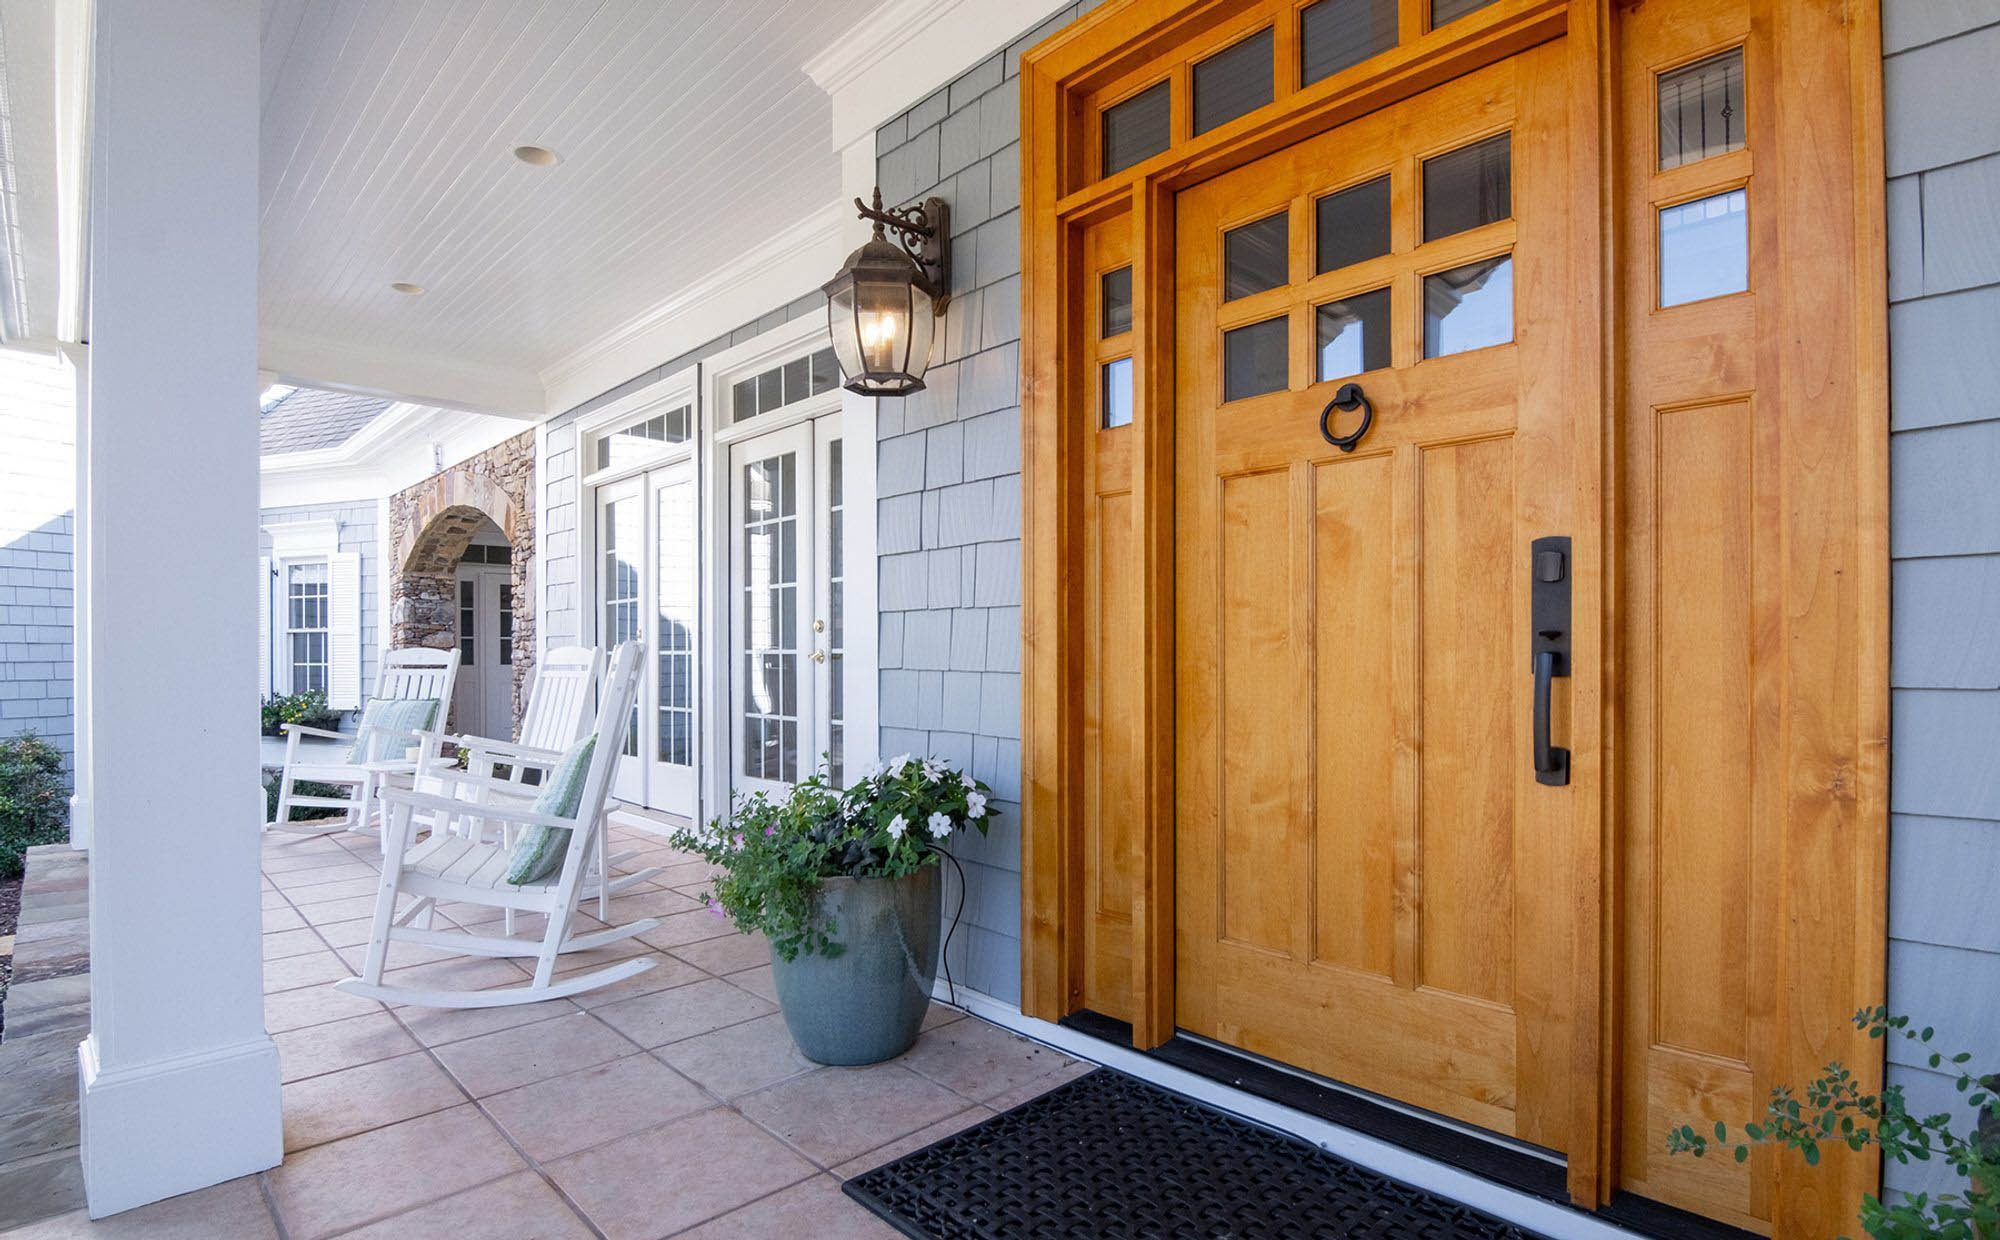 Front porch design wood front door with sidelights and transom, white beadboard soffit, tile floor.